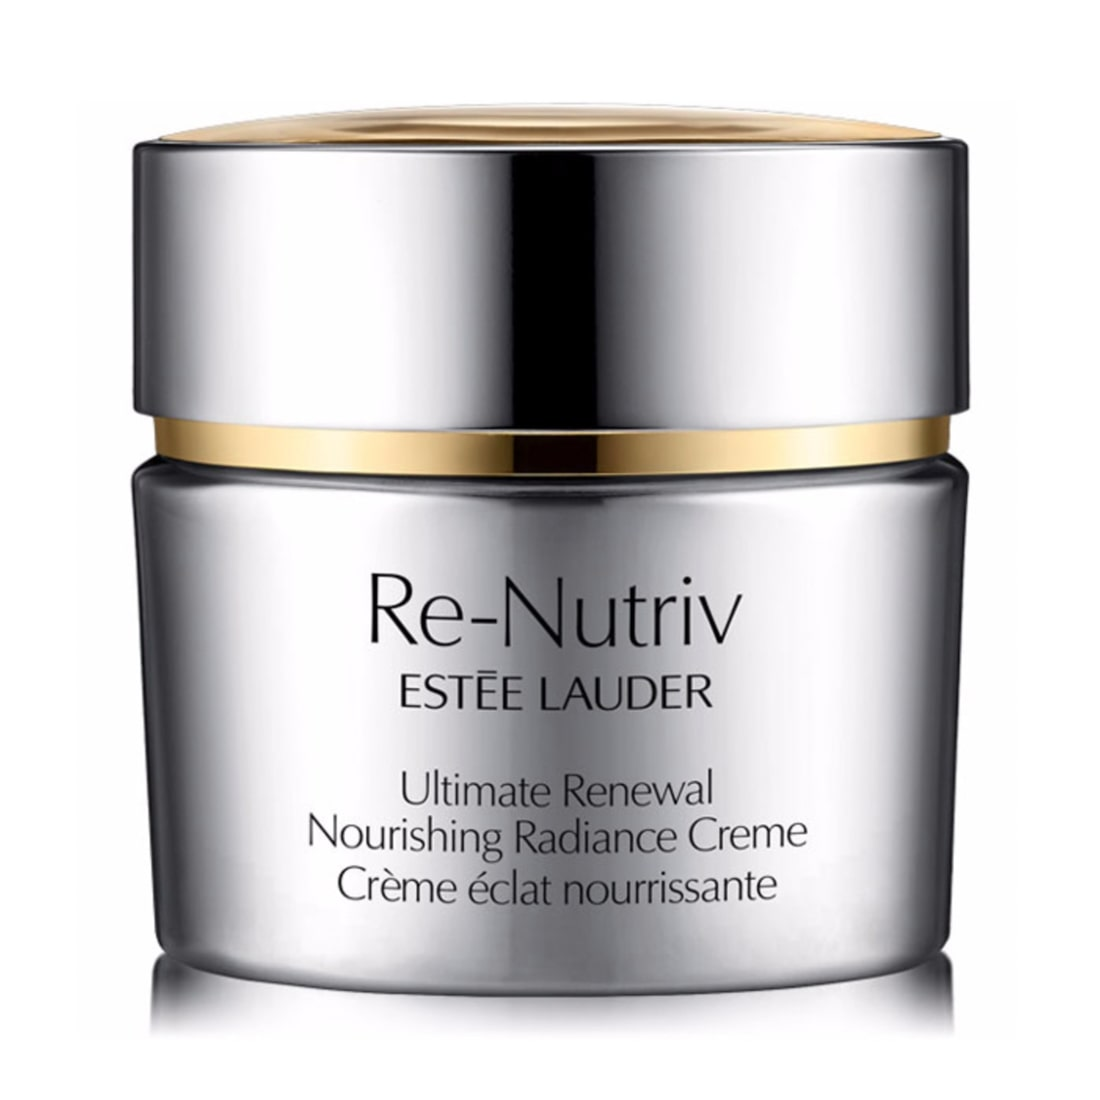 Re-Nutriv Ultimate Renewal Face Creme 50ml